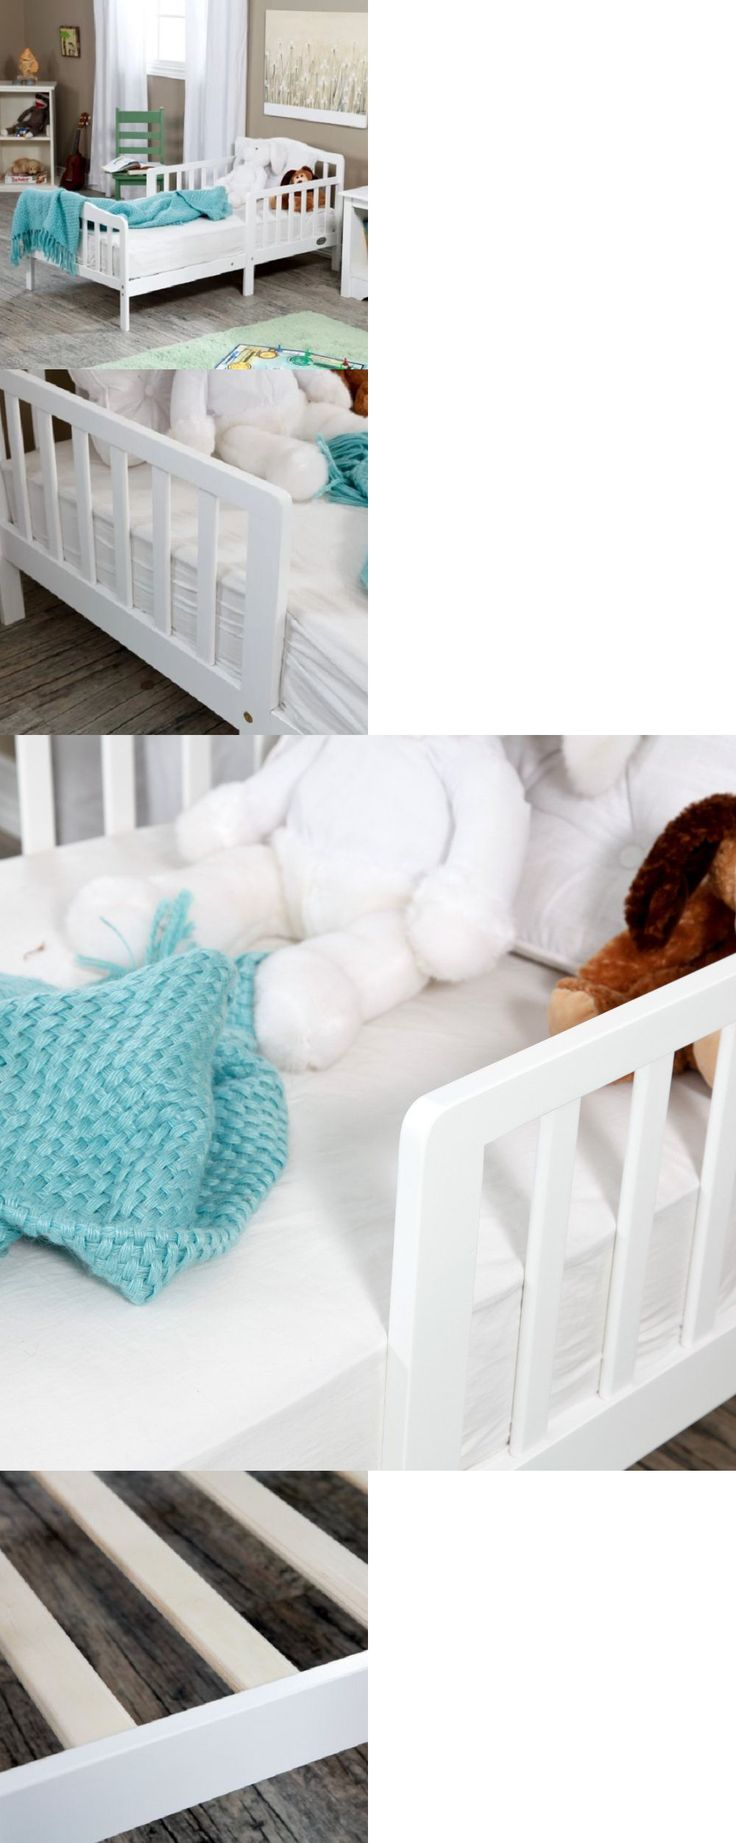 Kids Furniture: White Contemporary Toddler Bed Solid Wood Childs Bedroom Furniture Kids Beds New BUY IT NOW ONLY: $99.99